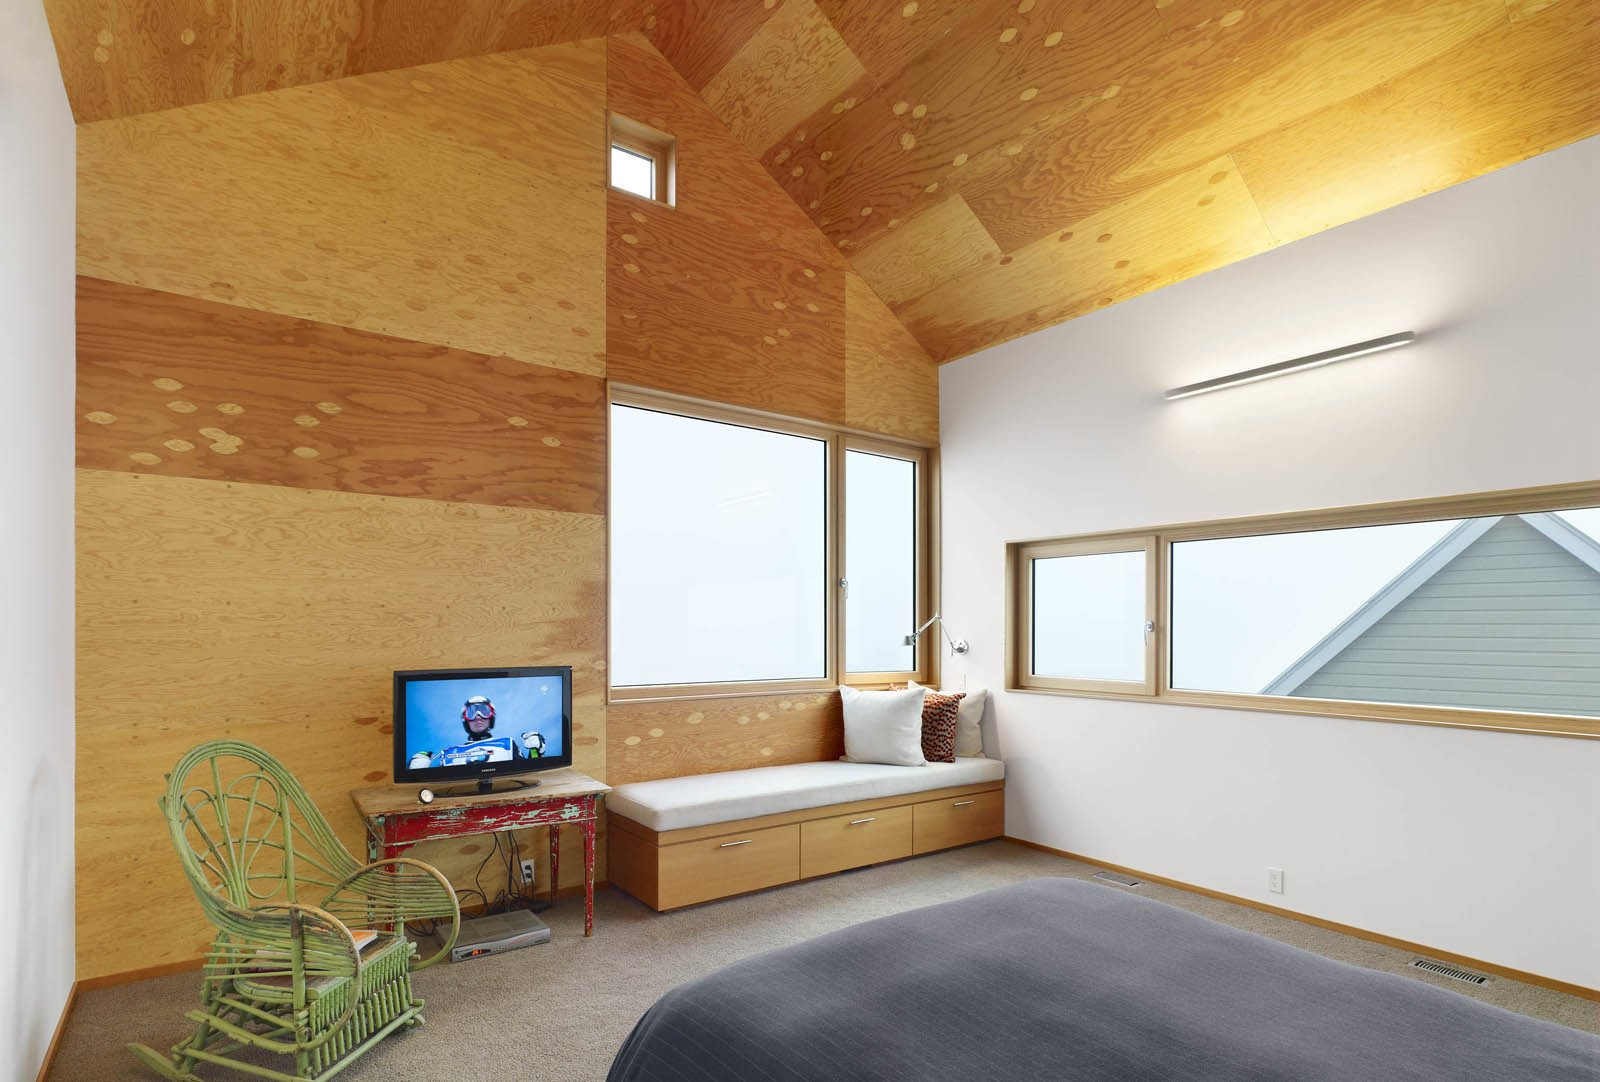 Inside the master bedroom, the juxtaposition of old and new is pronounced. Wooden furniture sits next to a streamlined built-in bench. The wood-framed windows open up to views of the gabled roof.  The Farm by Miyoko Ohtake